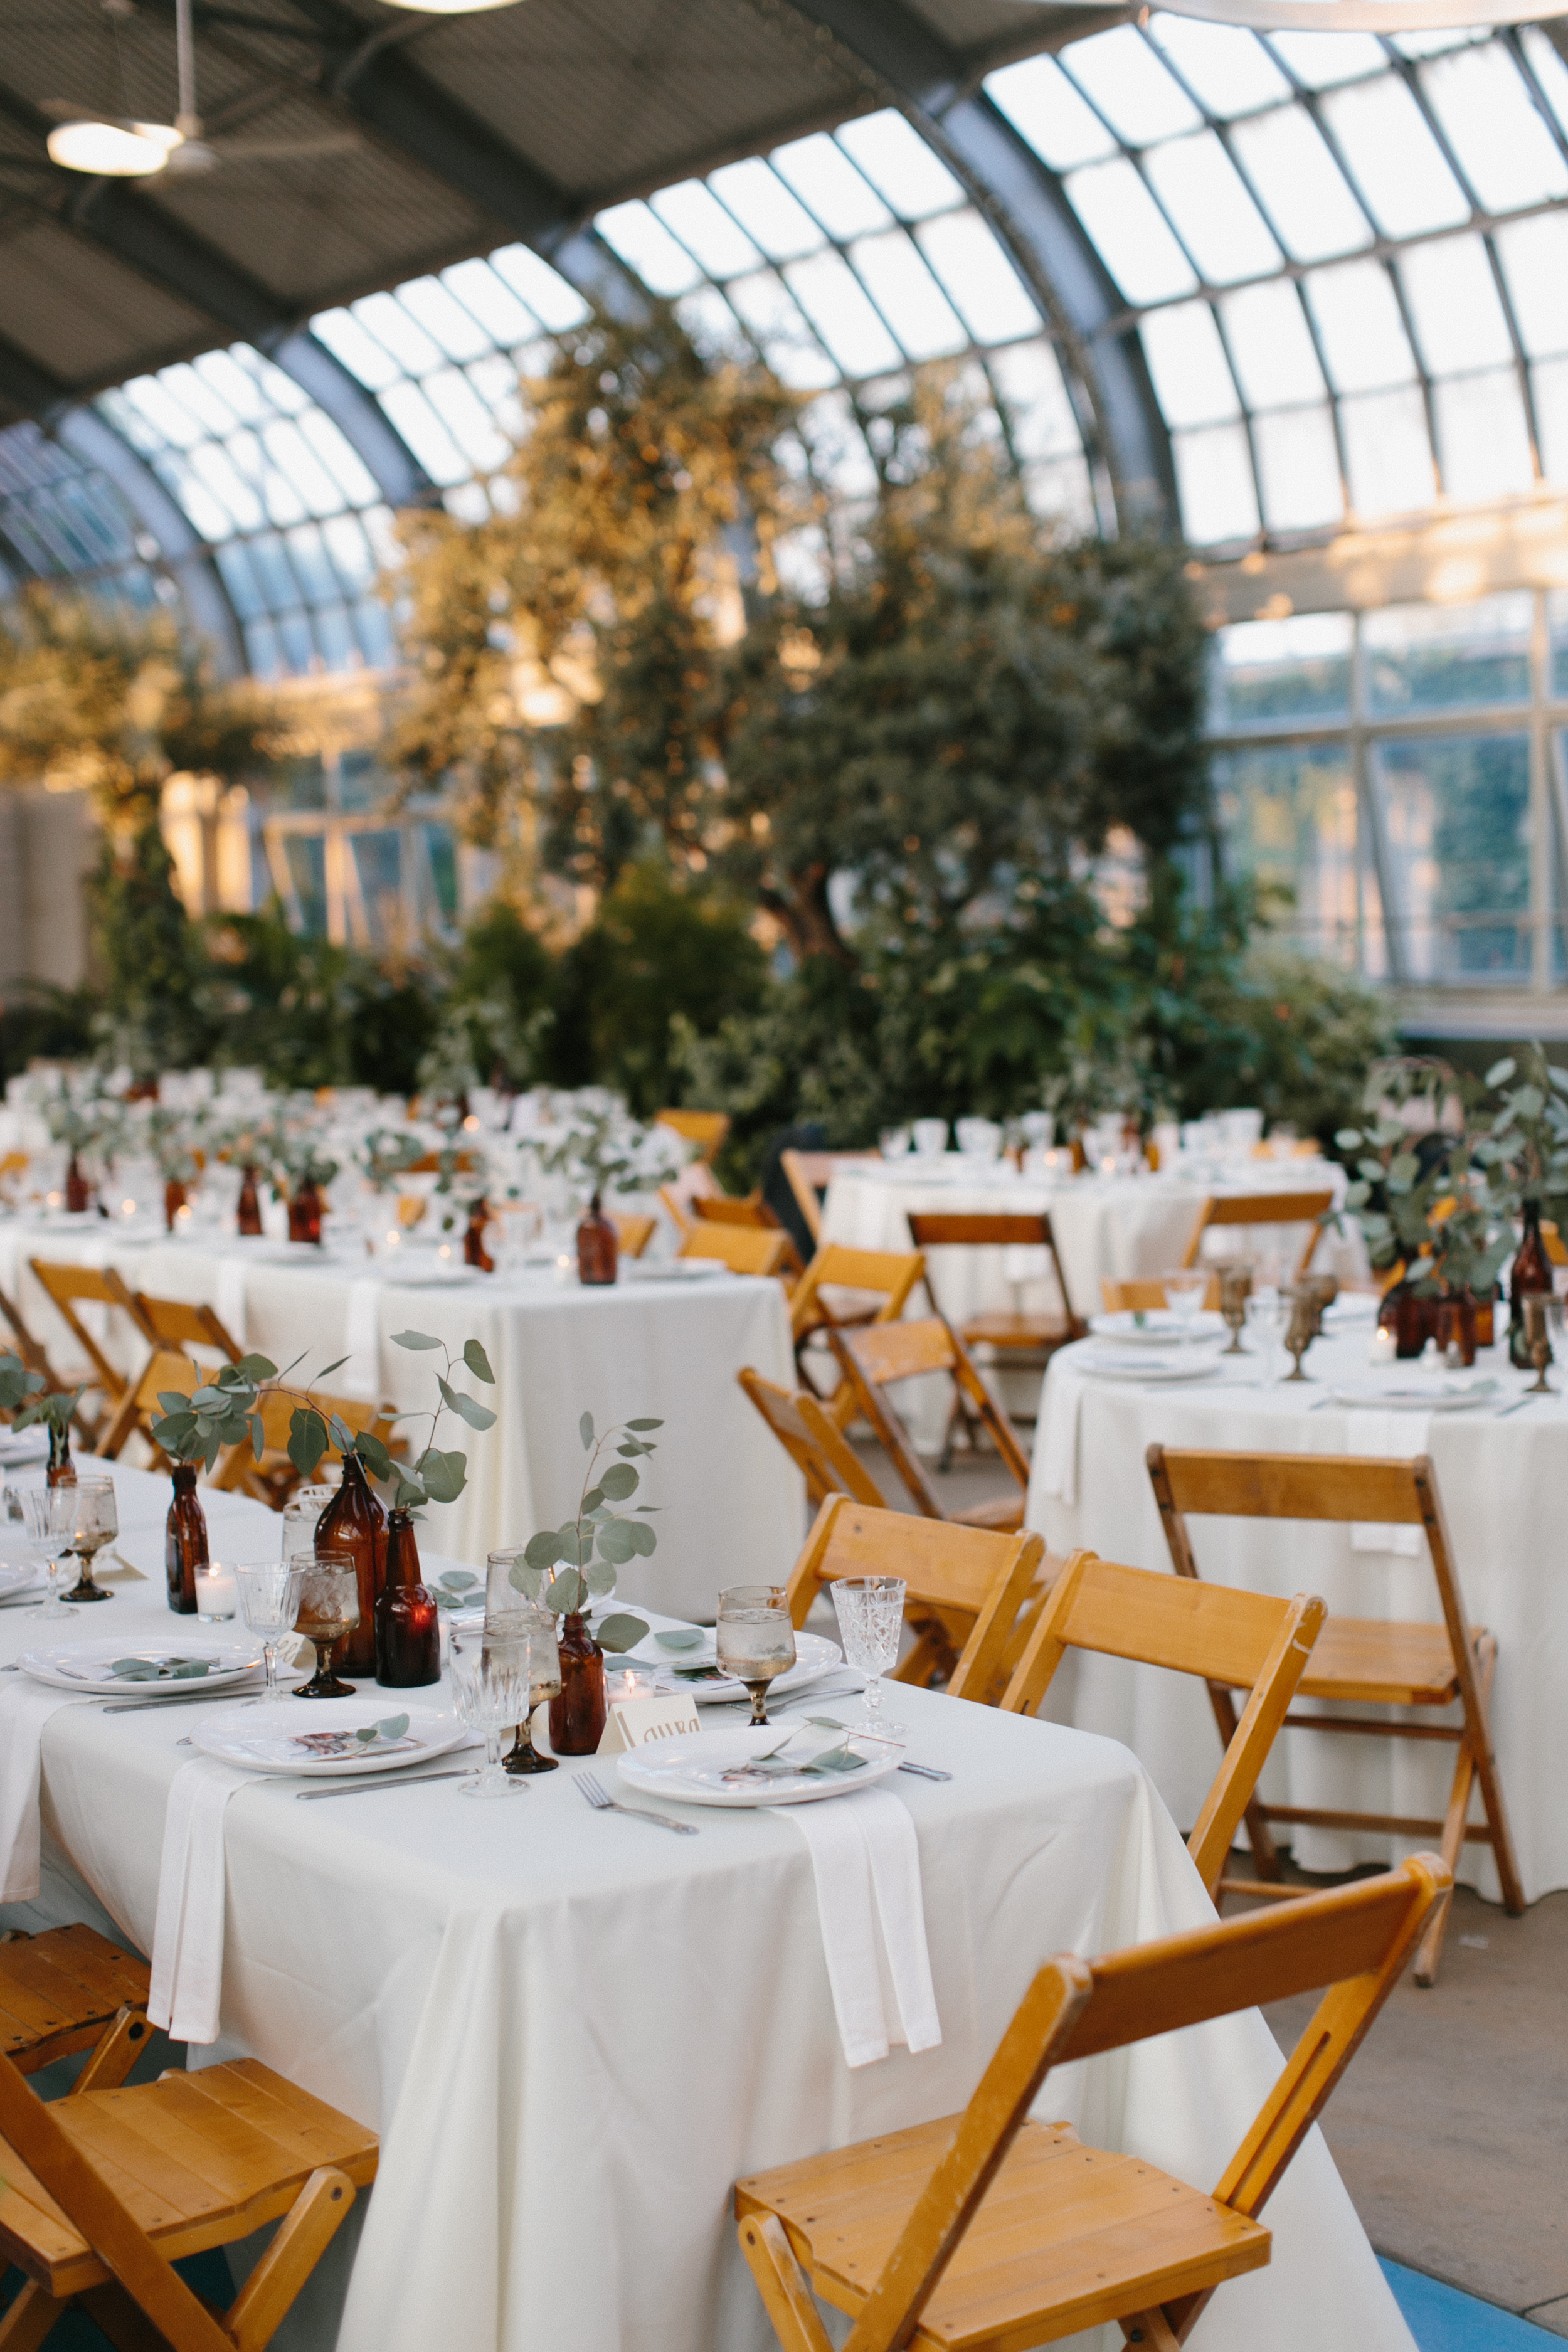 Chicago Wedding Garfield Park Conservatory Mae Stier Wedding Photographer Lifestyle Photography Midwest California-106.jpg